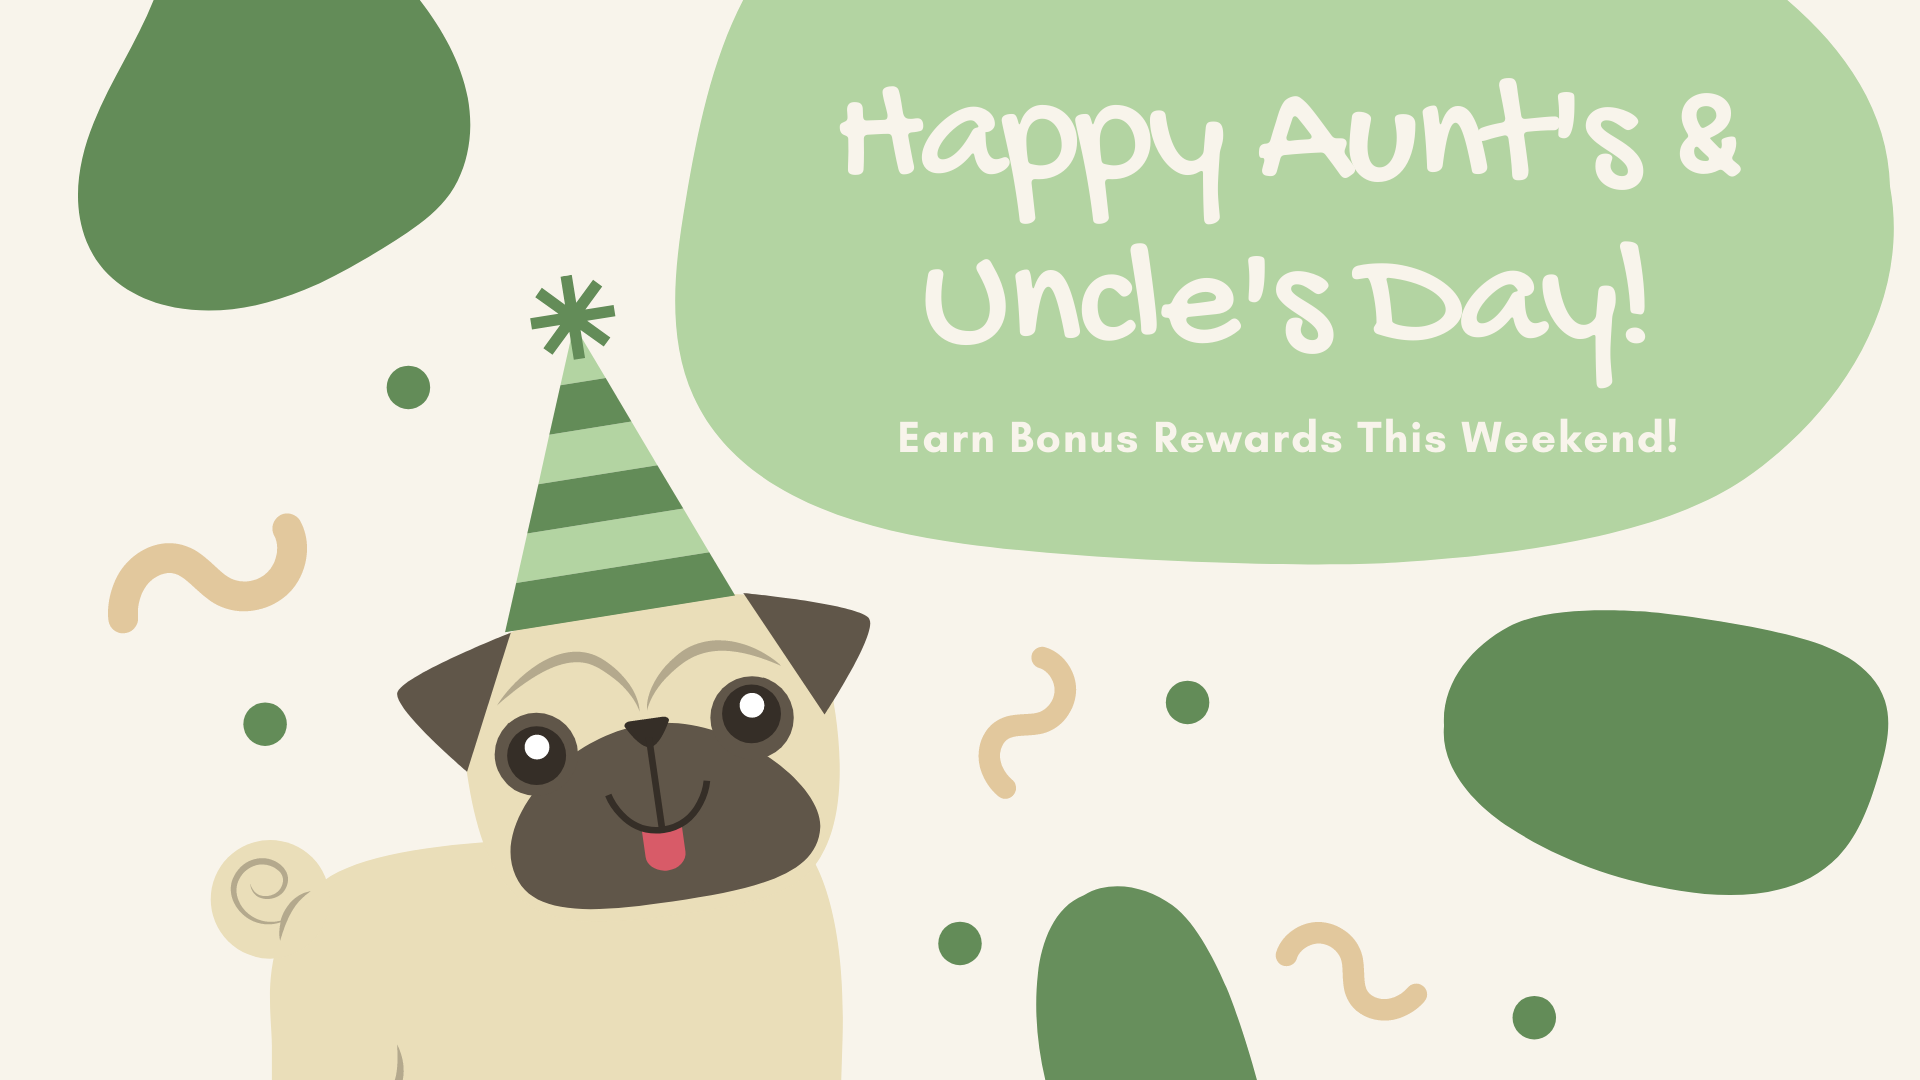 Aunt's and Uncle's Day 2021 - Bonus Rewards this Weekend!